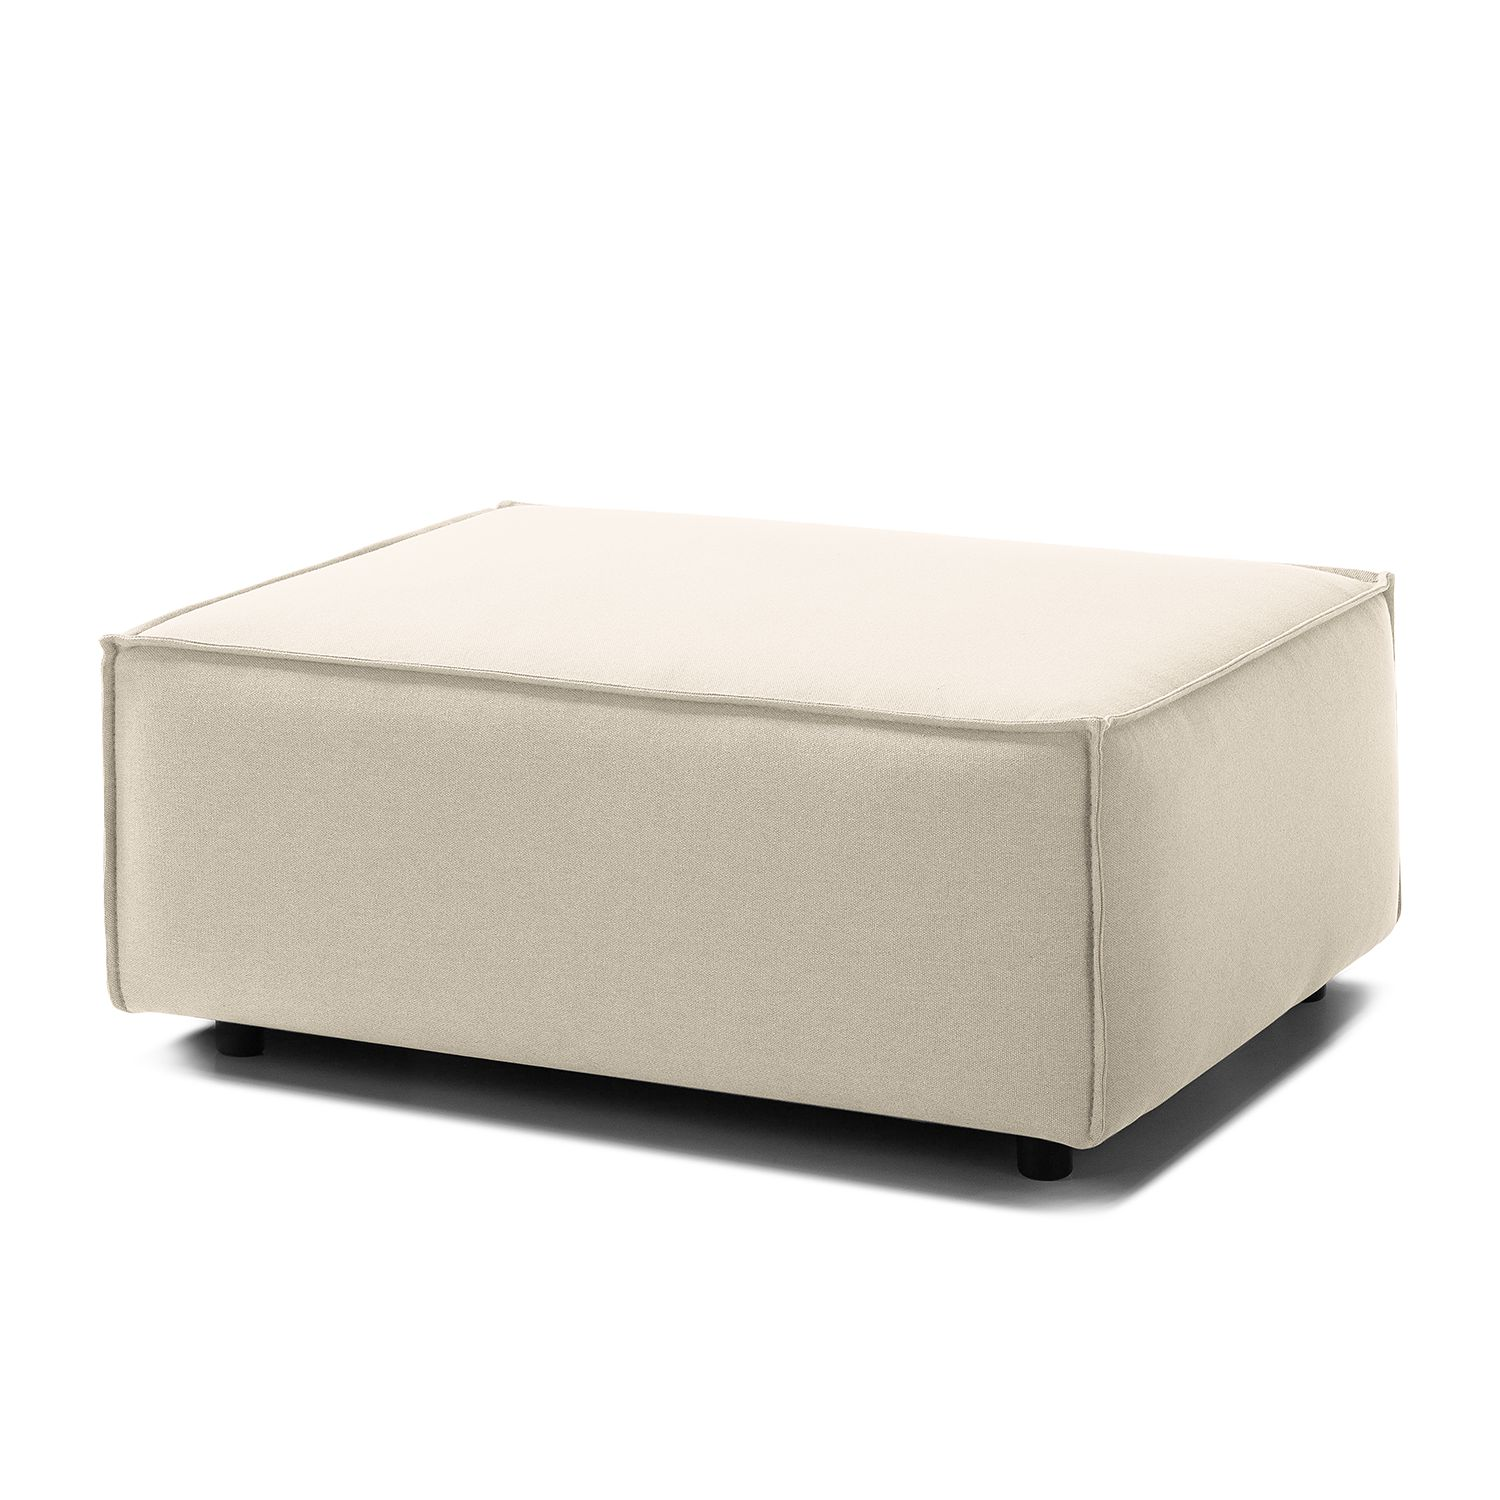 pouf repose pieds kinx tissu tissu osta blanc vieilli kinx par kinx chez home24 fr. Black Bedroom Furniture Sets. Home Design Ideas